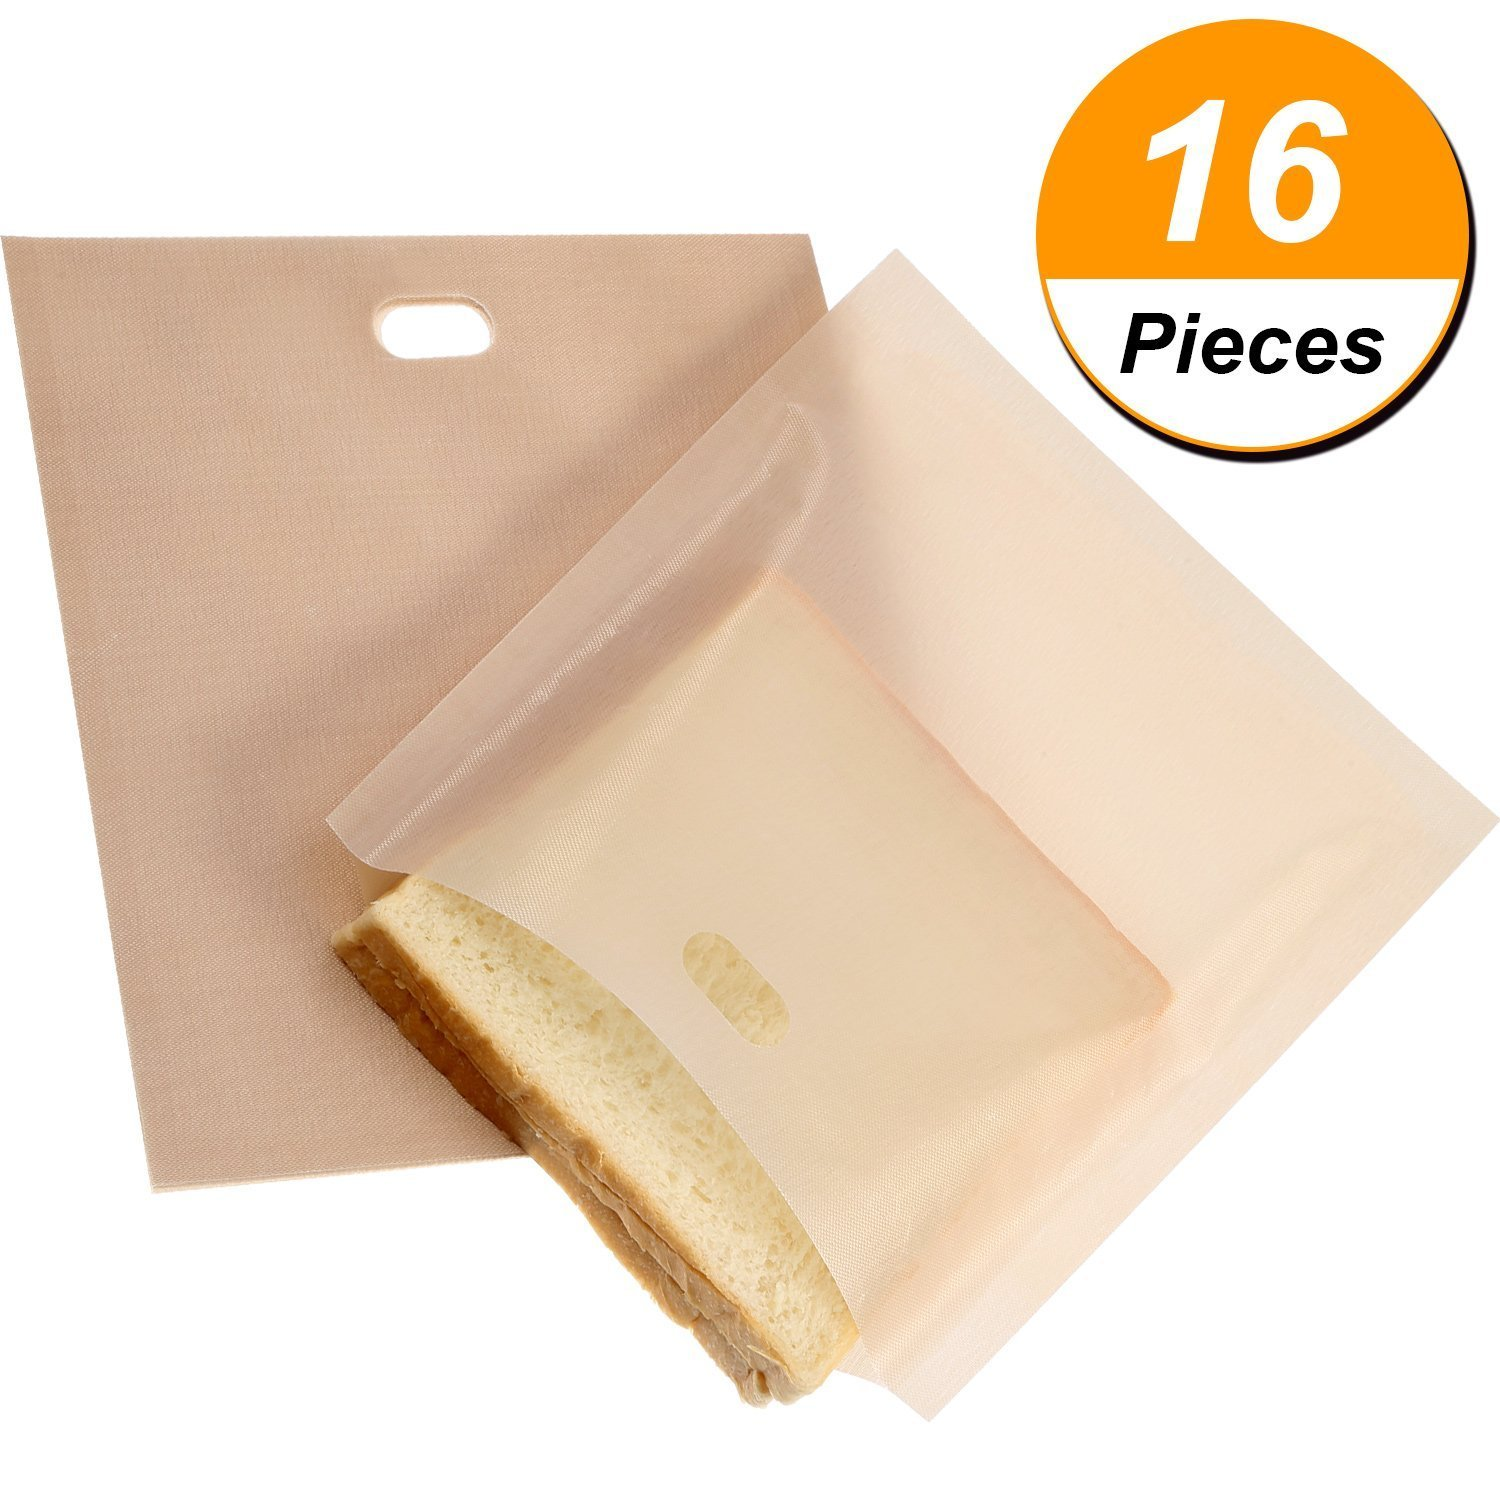 Toaster Bags 16 Pack Non-stick Reusable Toast Bag, Heat Resistant, Good for Grilled Cheese, Sandwiches, Chicken, Hot Dogs, Vegetables P-16